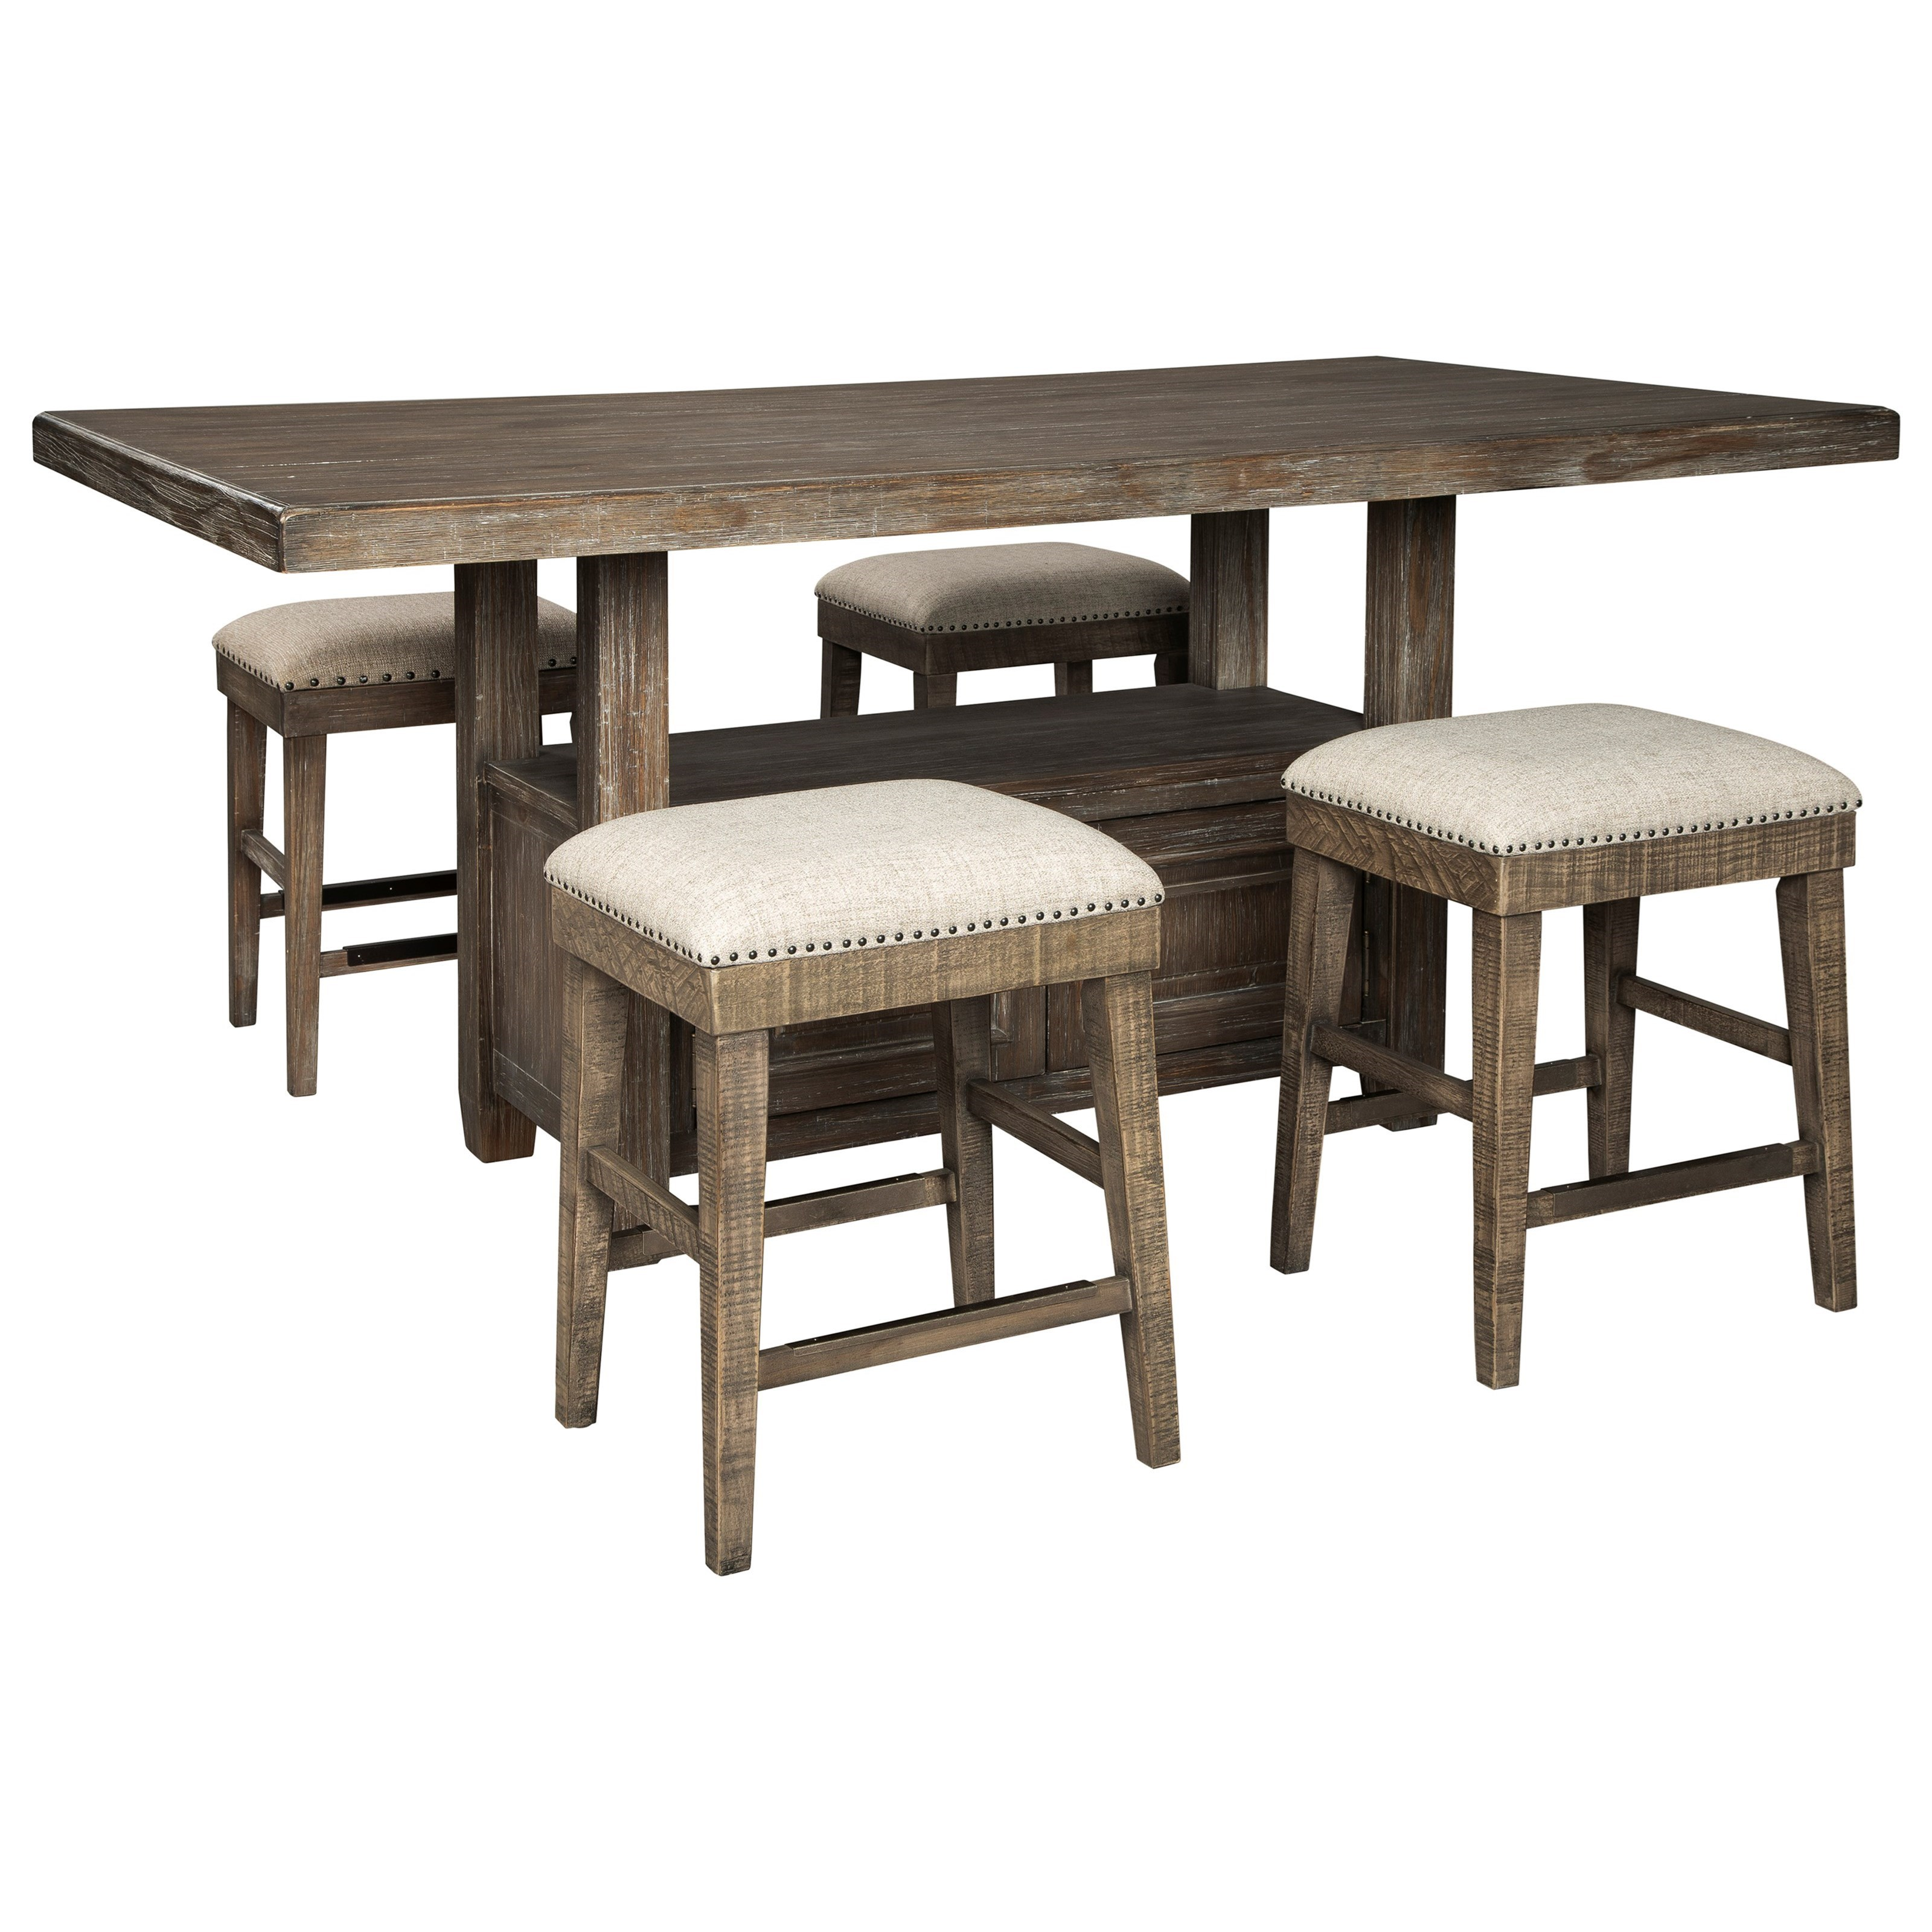 5-Piece Rect. Counter Table w/ Storage Set